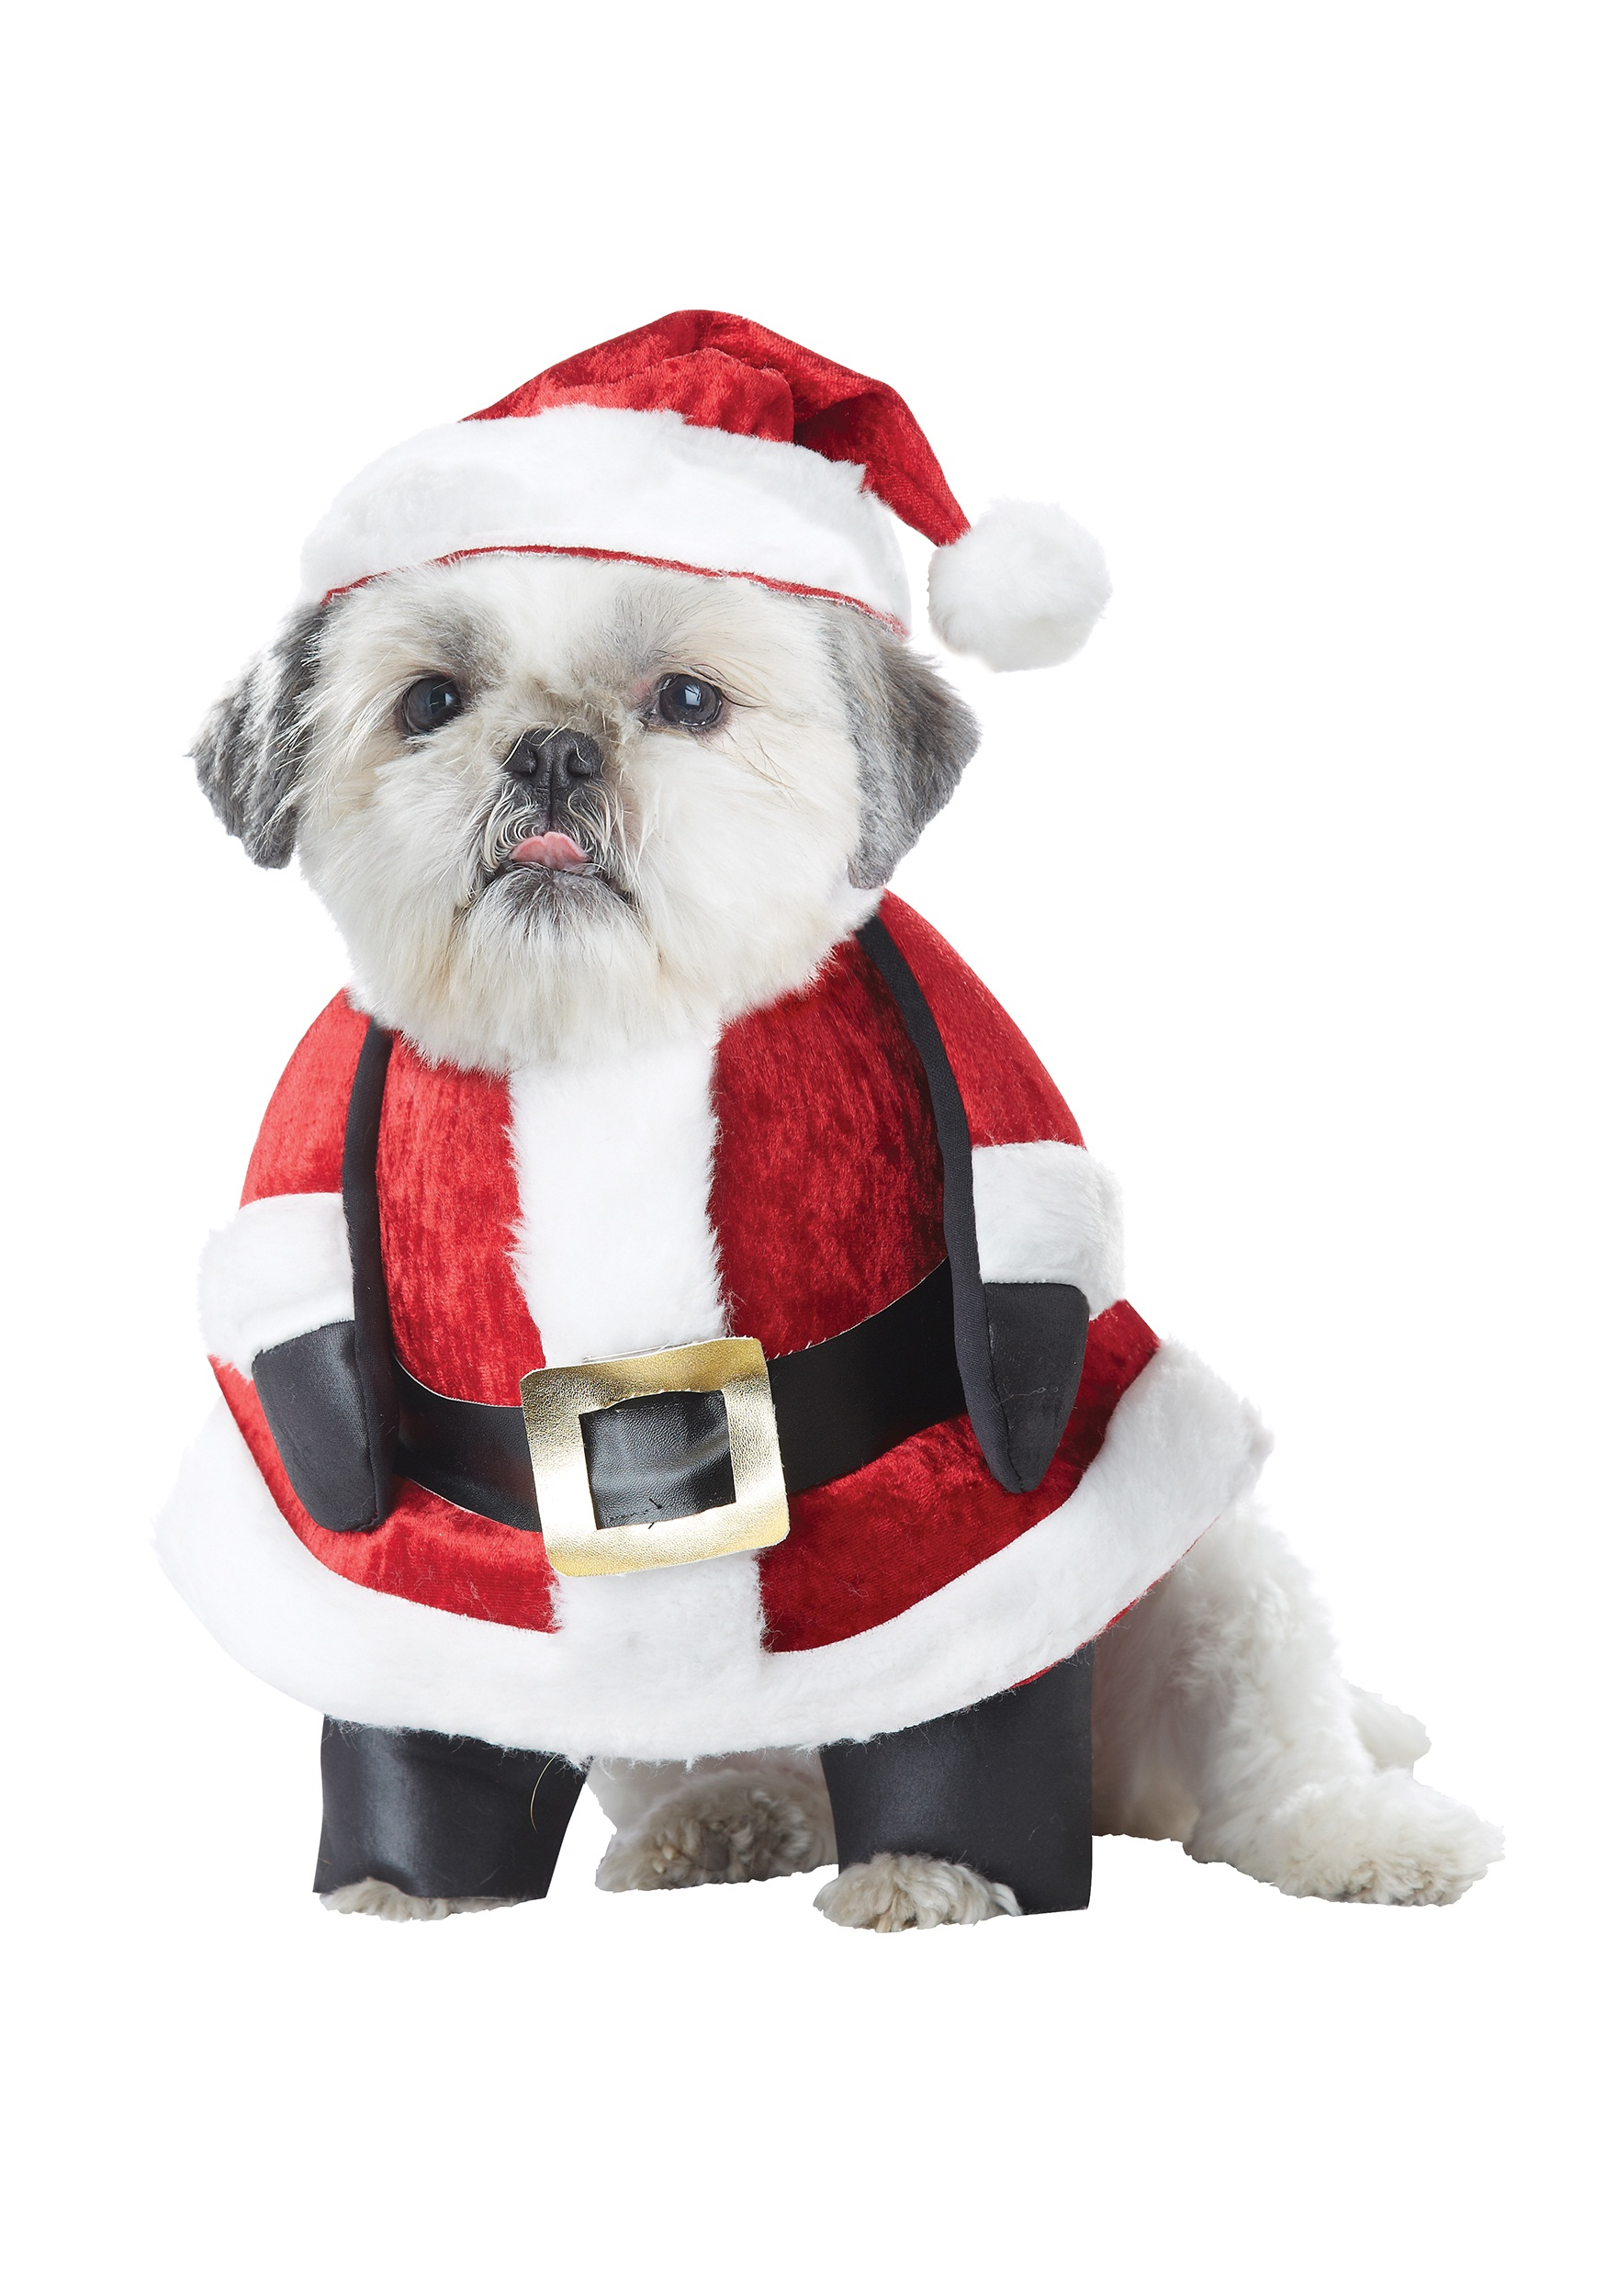 Santa Suit Dog photo - 3